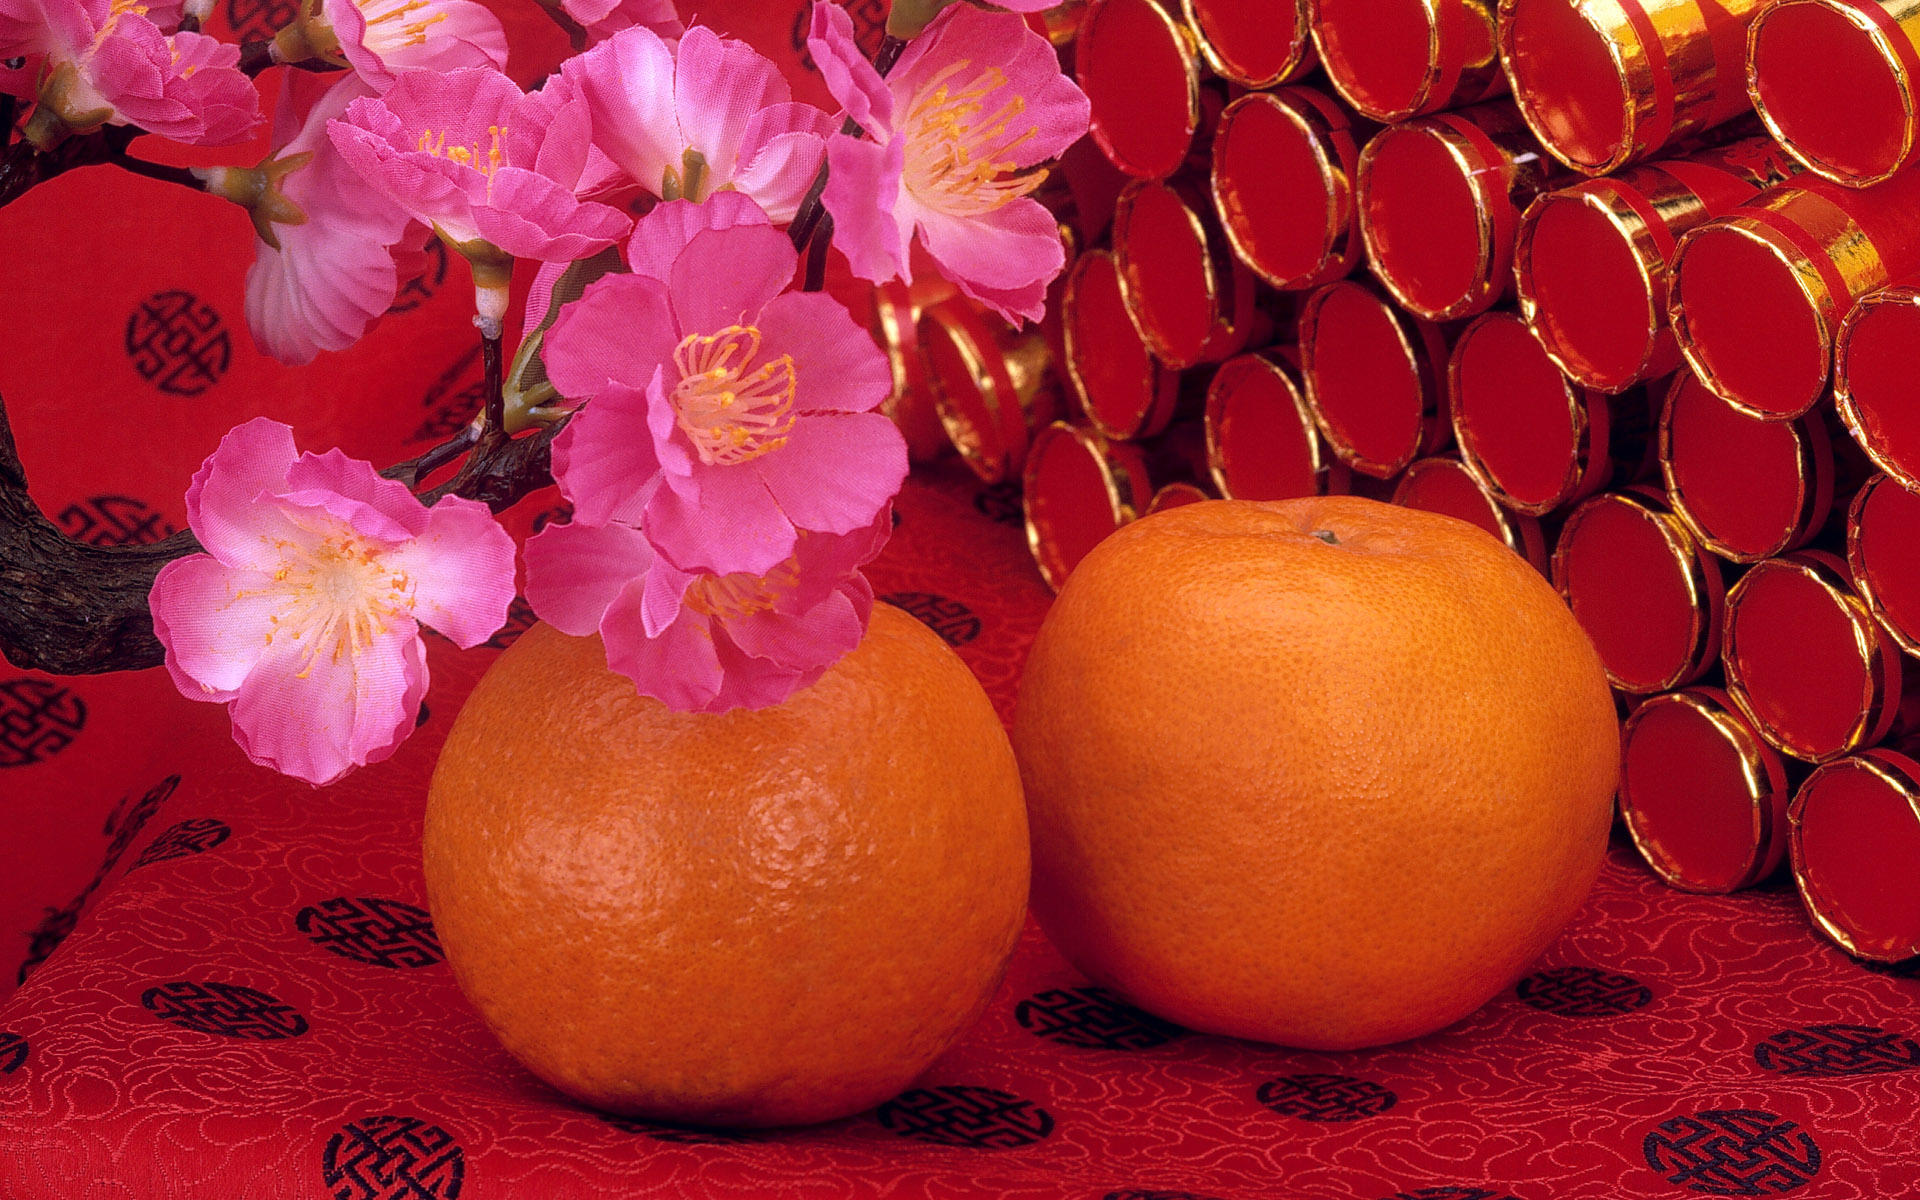 Happy Chinese New Year Photos   Wallpaper High Definition High 1920x1200